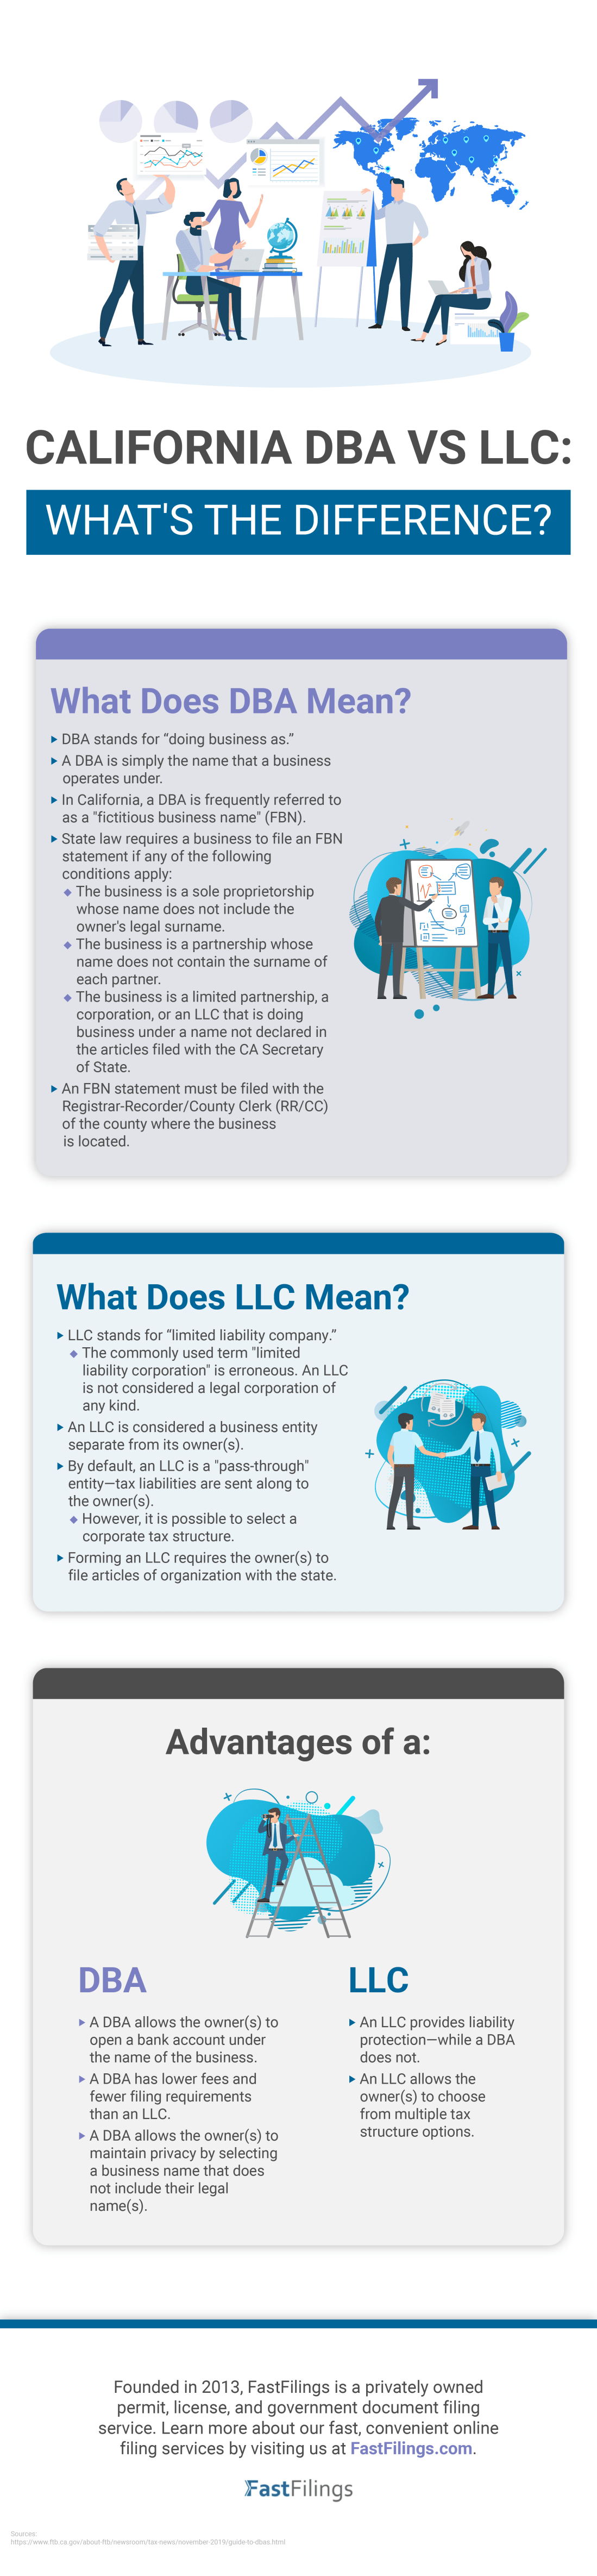 California DBA vs. LLC What's the Difference